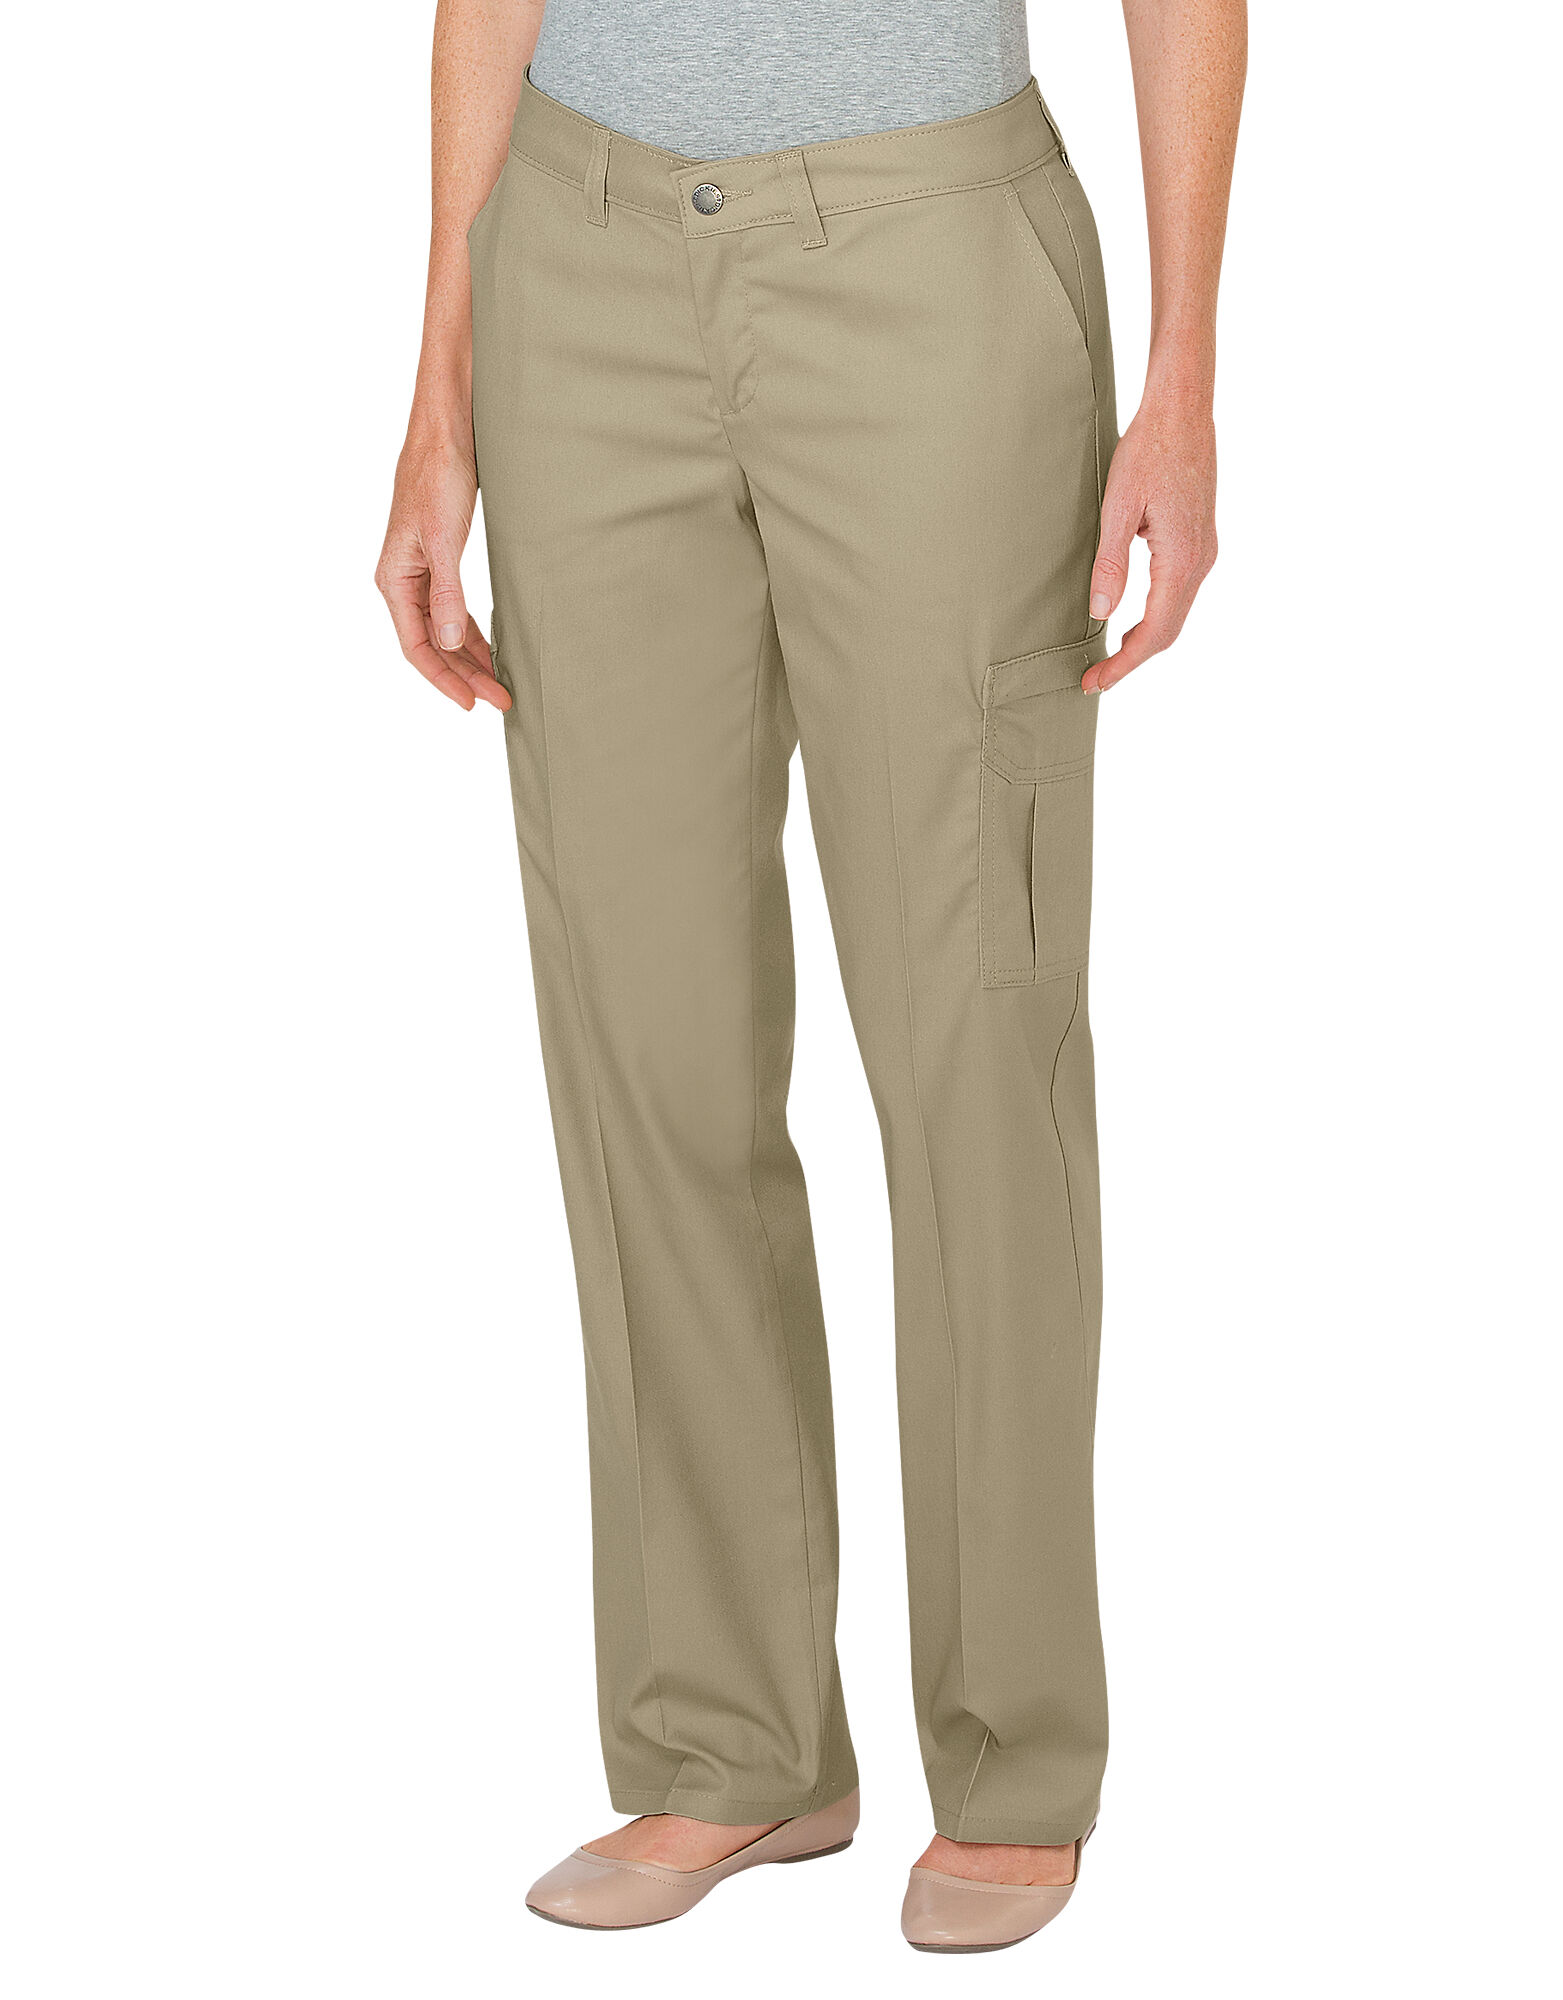 Khaki Pants For Women. If you need a worthwhile way to boost the potential of your wardrobe, consider khaki pants for women. Prepare for both casual and formal events with radiant confidence in flattering and comfortable pants.